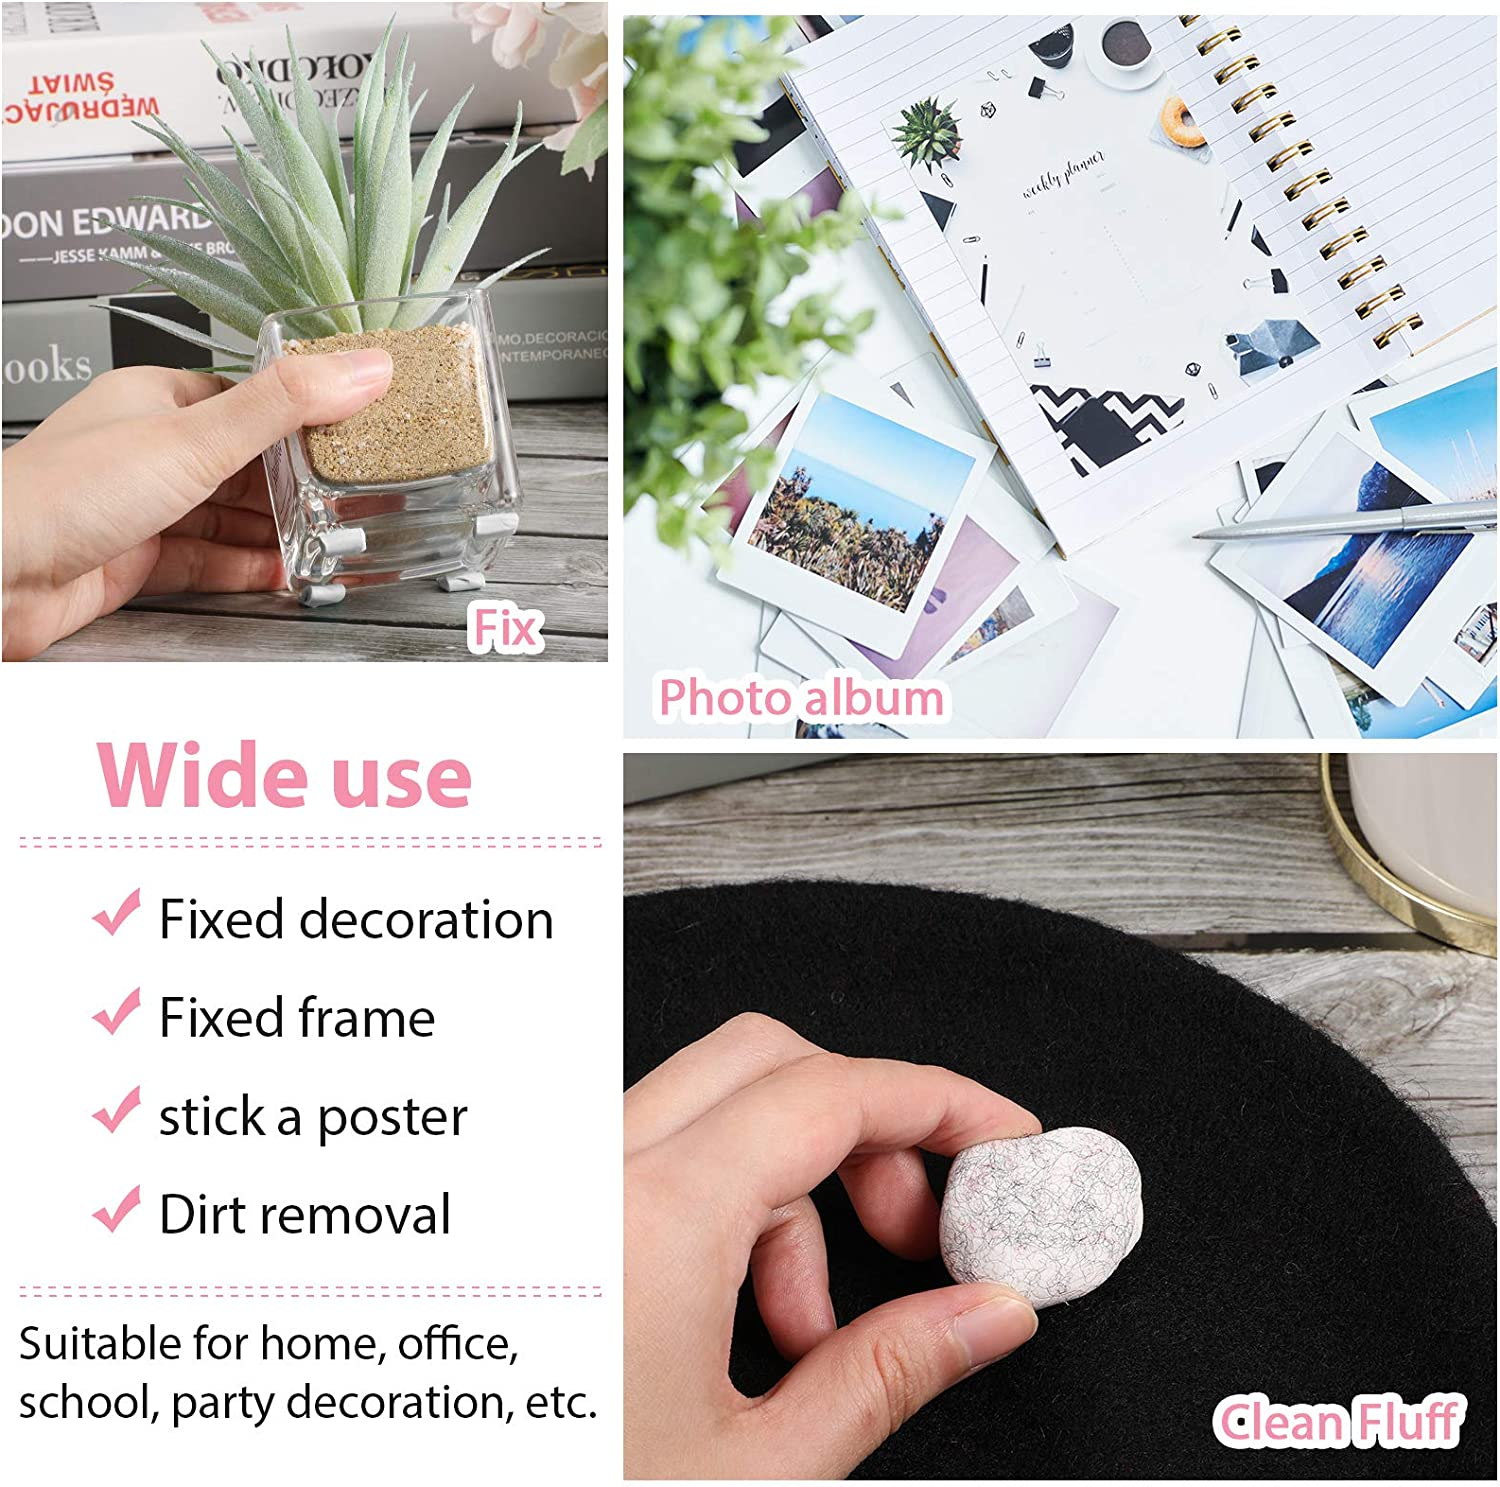 510 Pieces Removable Adhesive Tacky Safe Sticky Wall Tack Putty ...